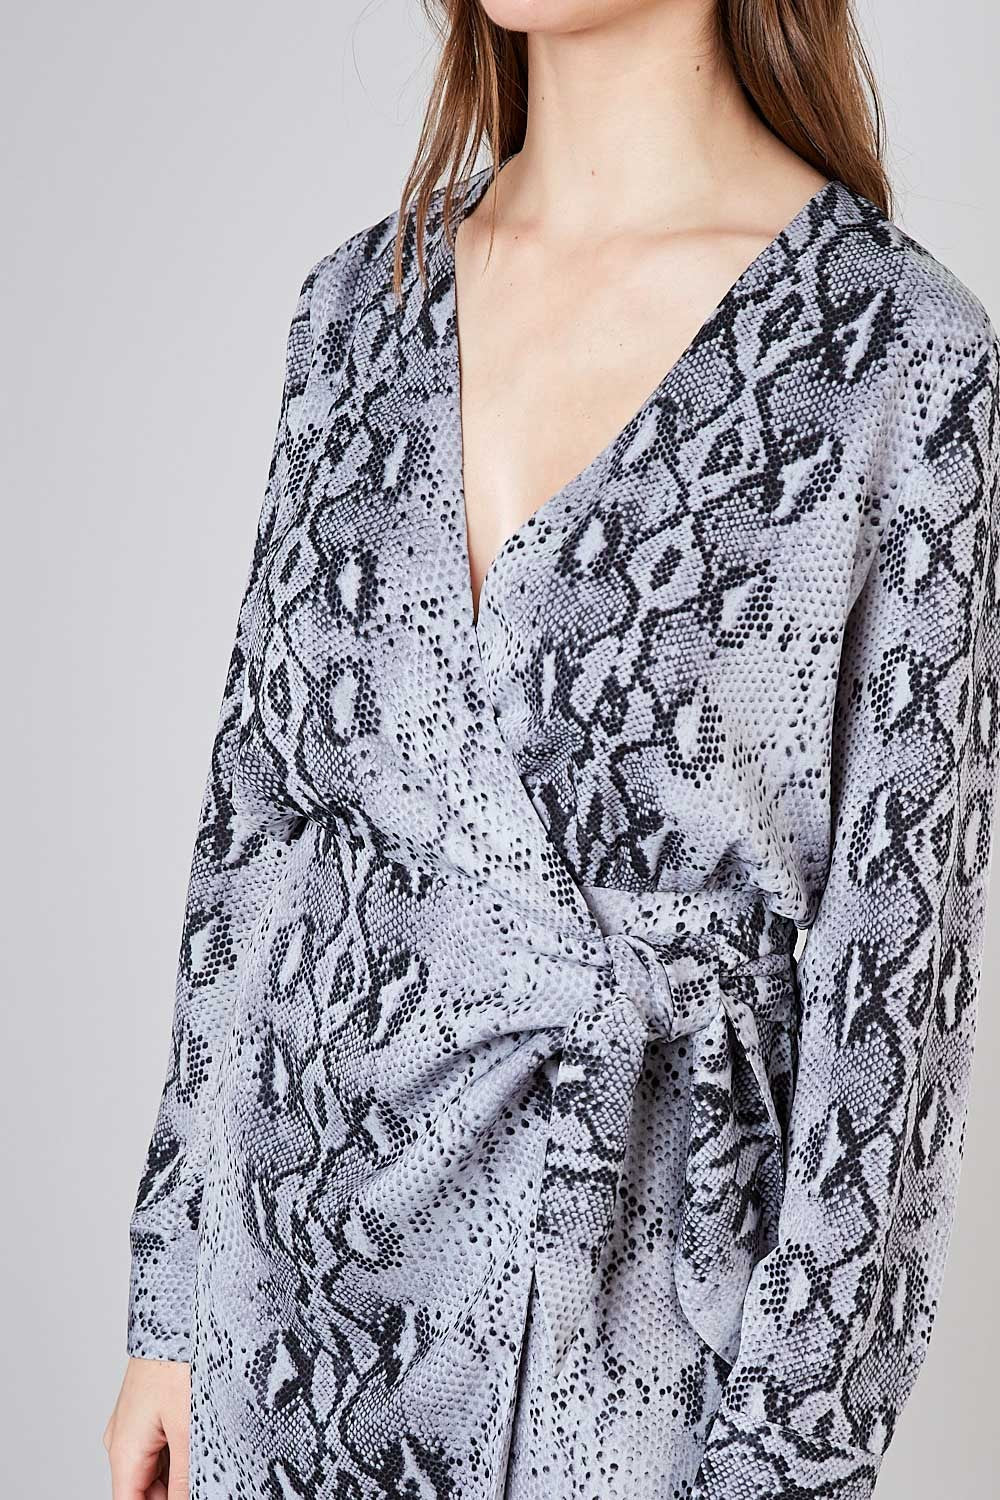 Do+Be Snakeskin Women's Wrap Dress